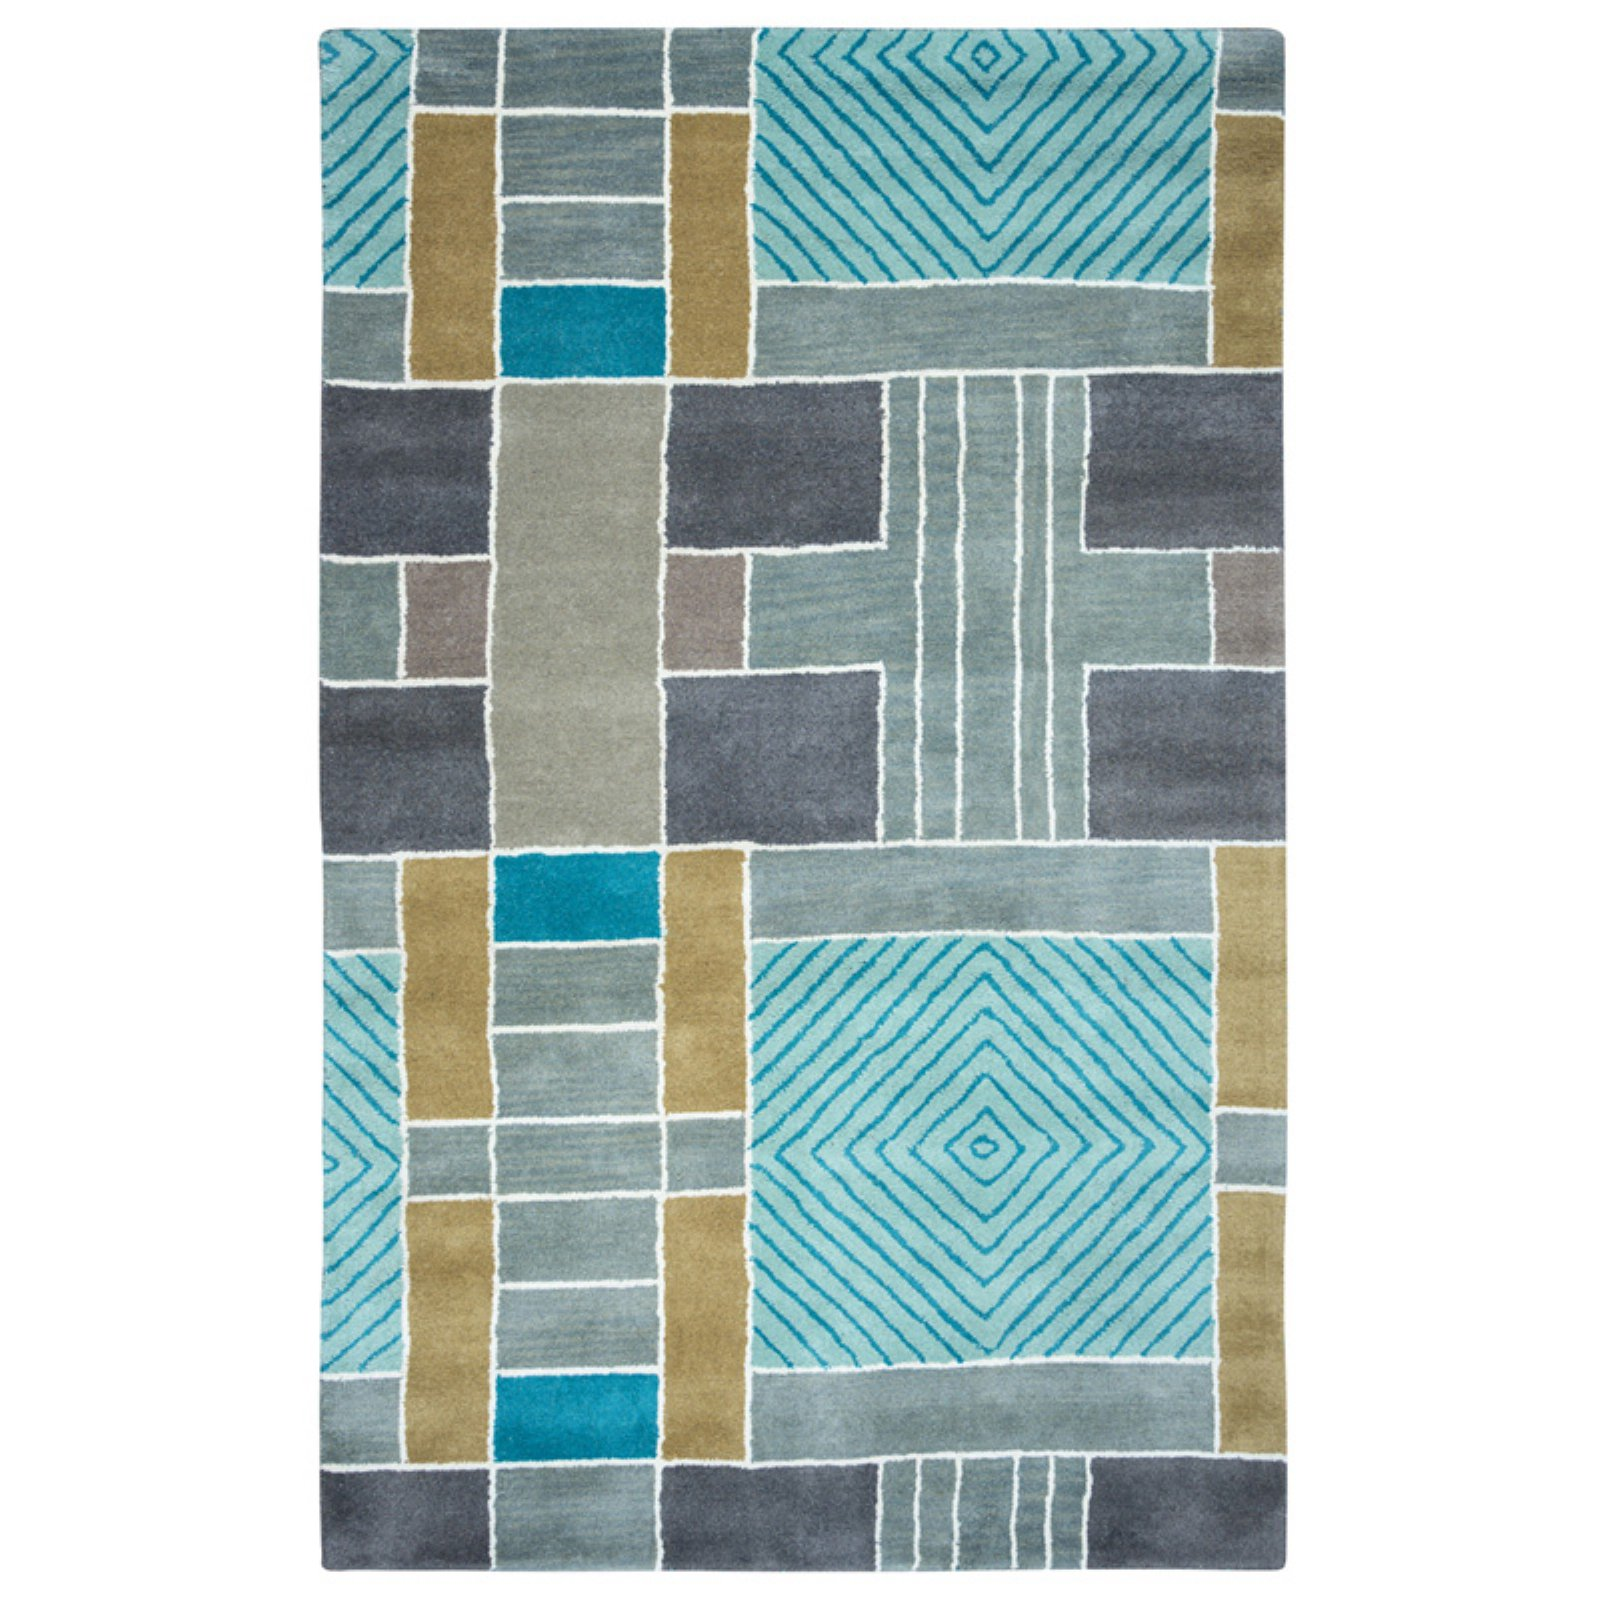 Rizzy Home Volare VO2654 Rug - (9 Foot x 12 Foot)